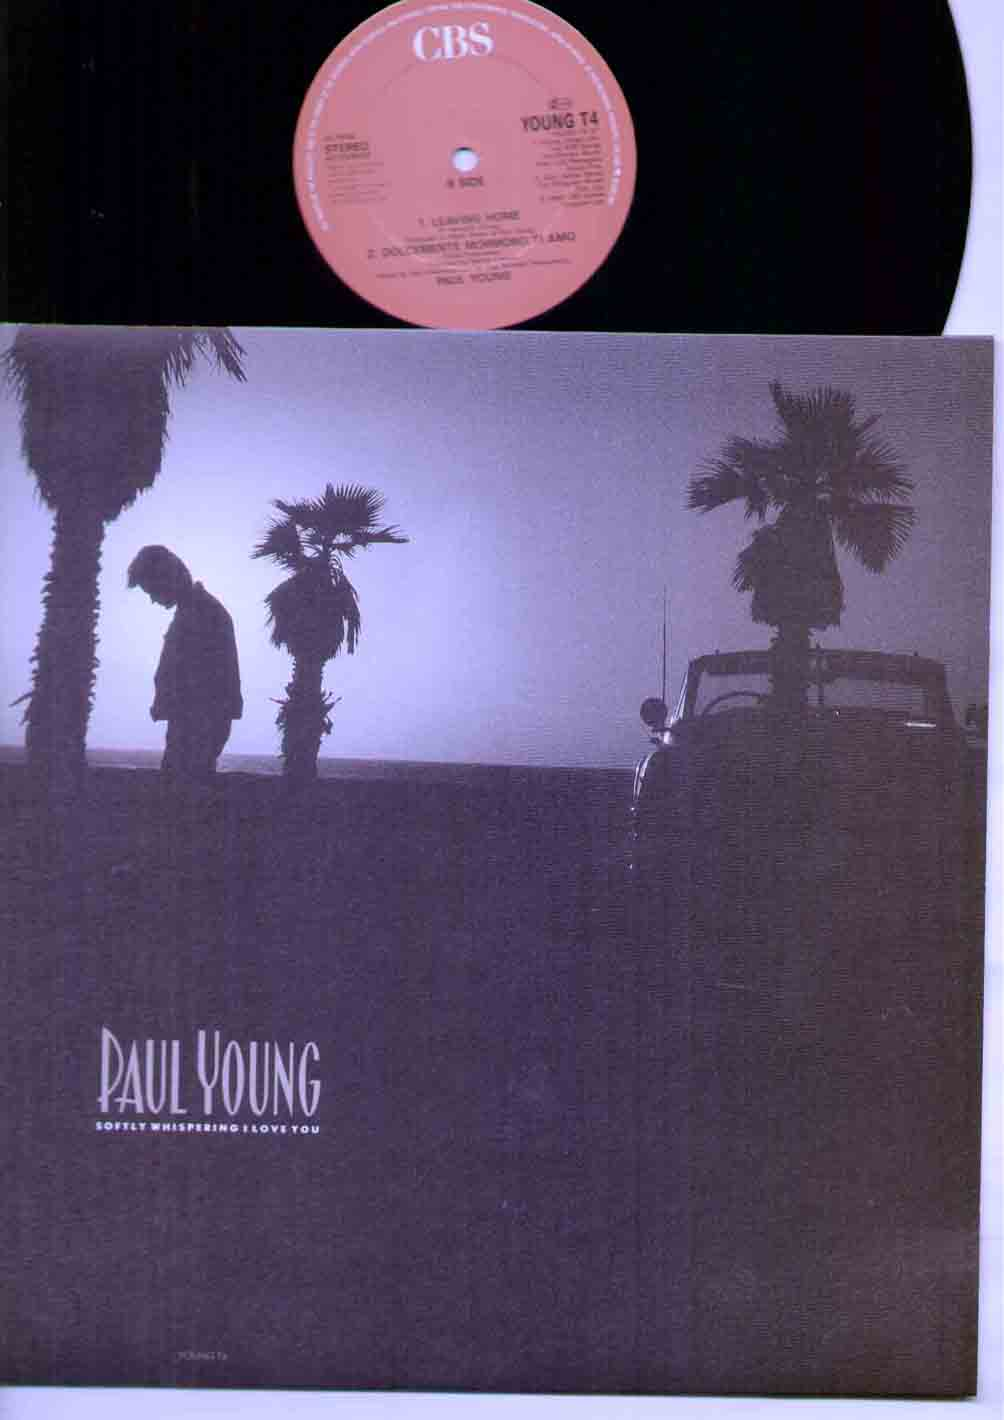 Paul Young Softly+Whispering+I+Love+You 12''